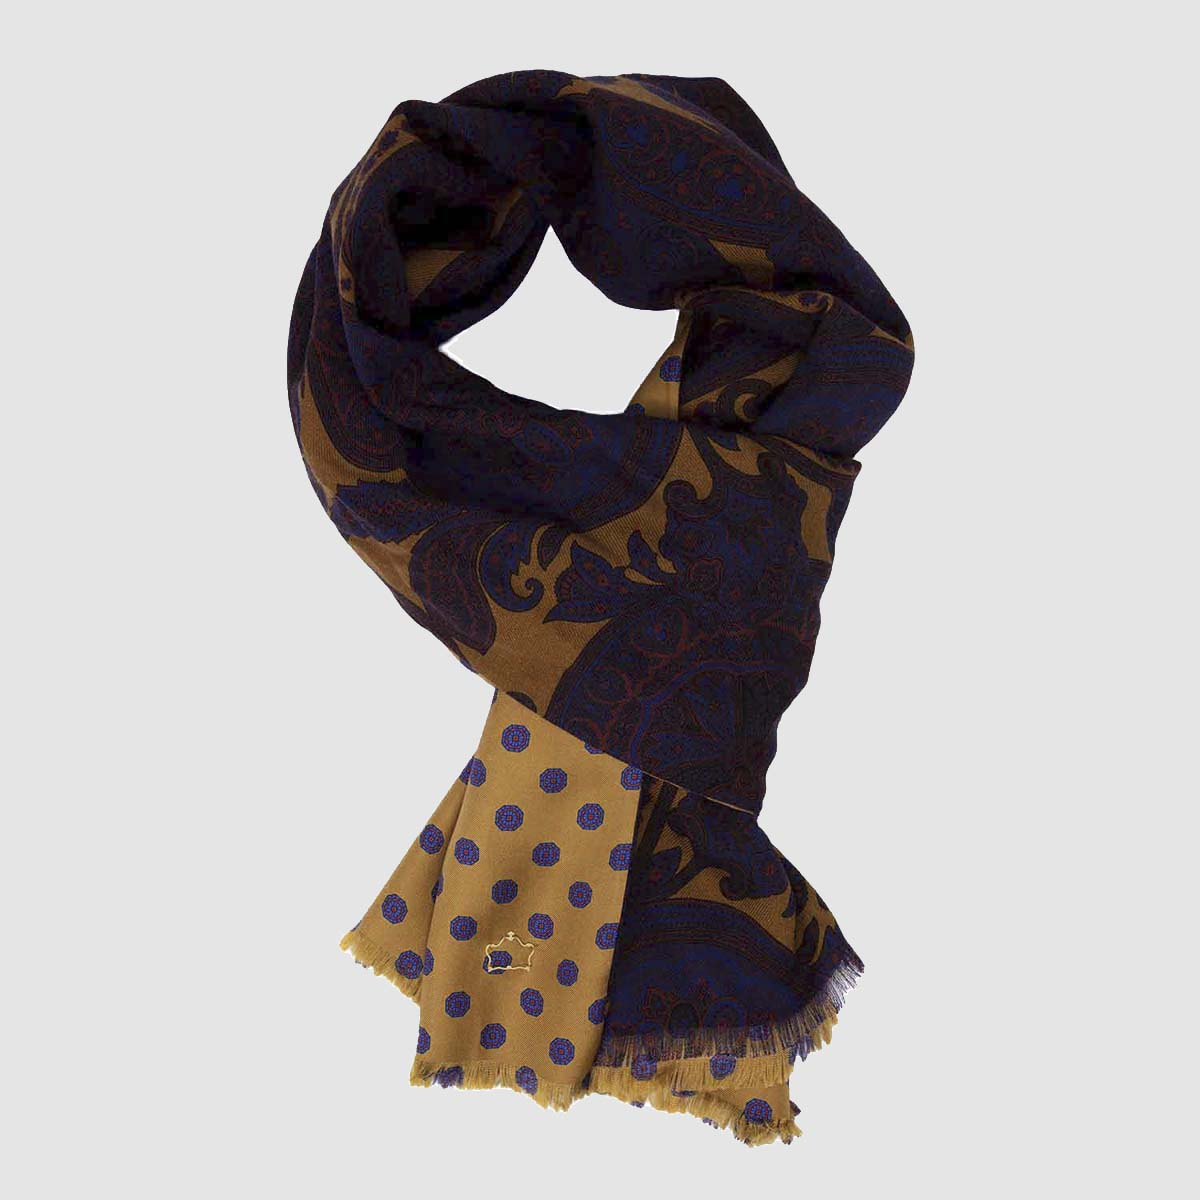 Gregale Kashmir patterned Wool & Silk Scarf